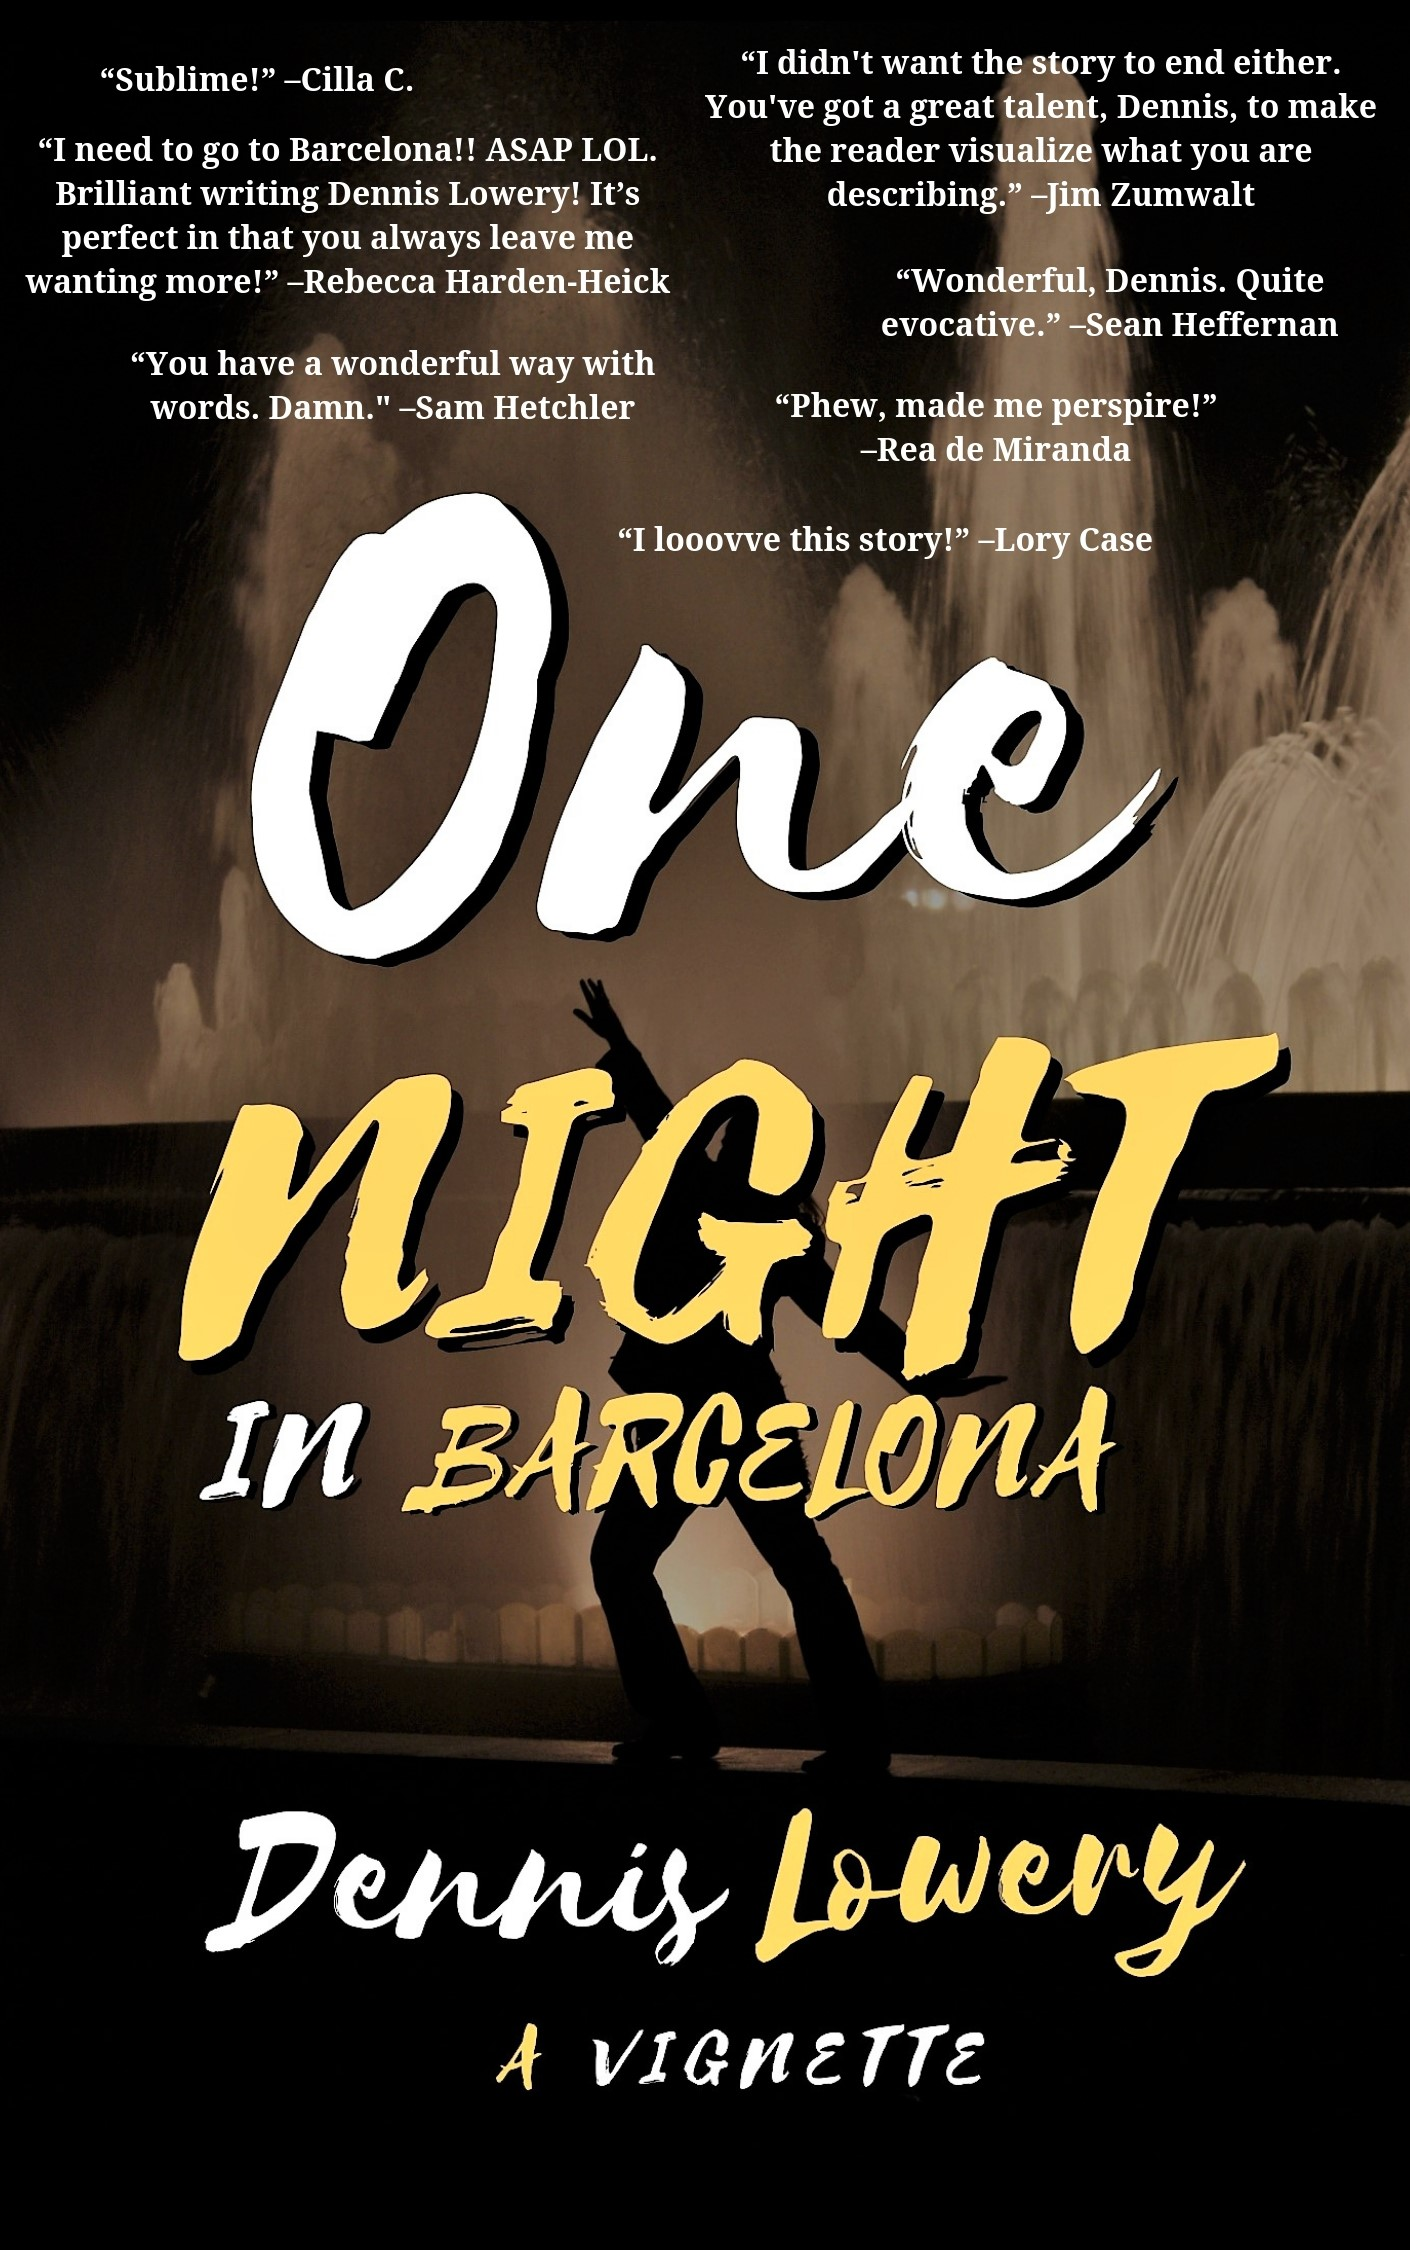 ONE NIGHT in Barcelona (reader comments)